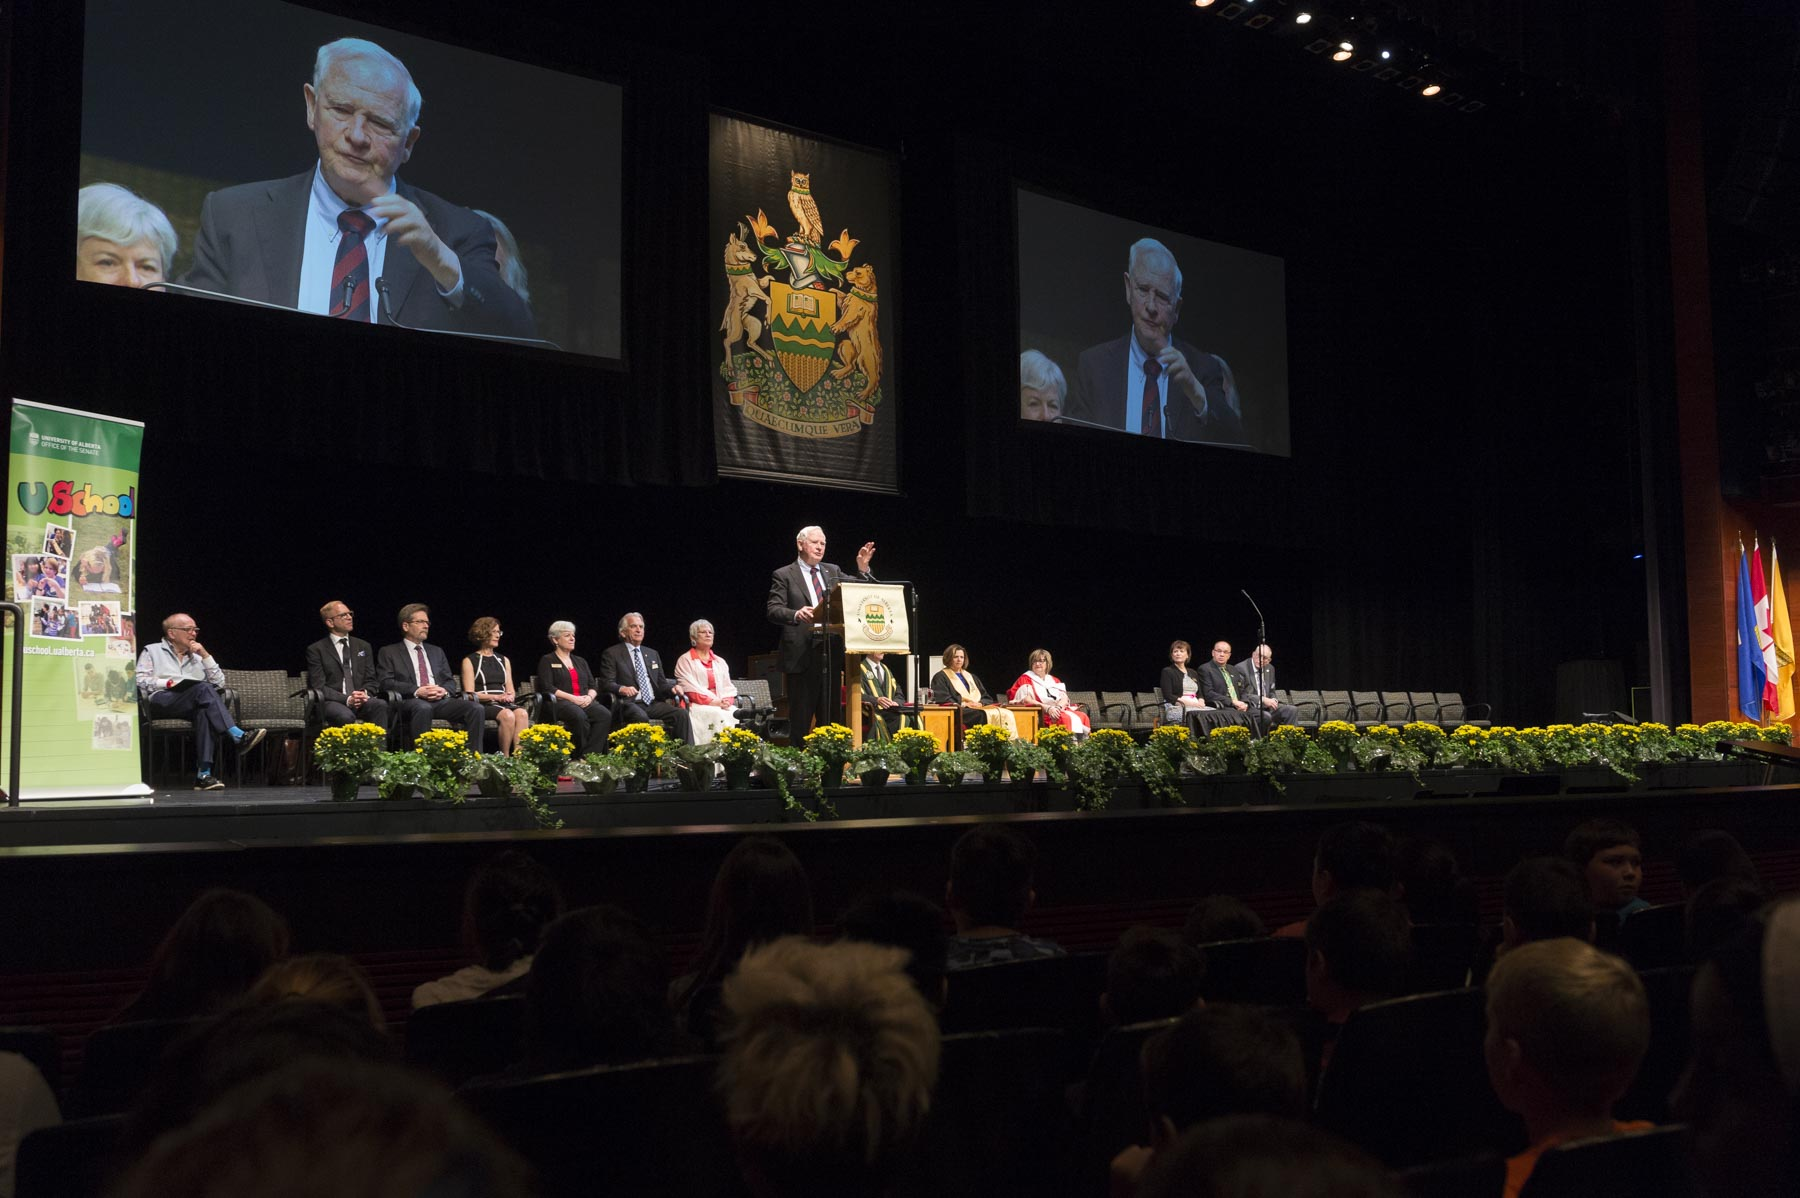 The Governor General addressed the 700 students gathered in the auditorium.